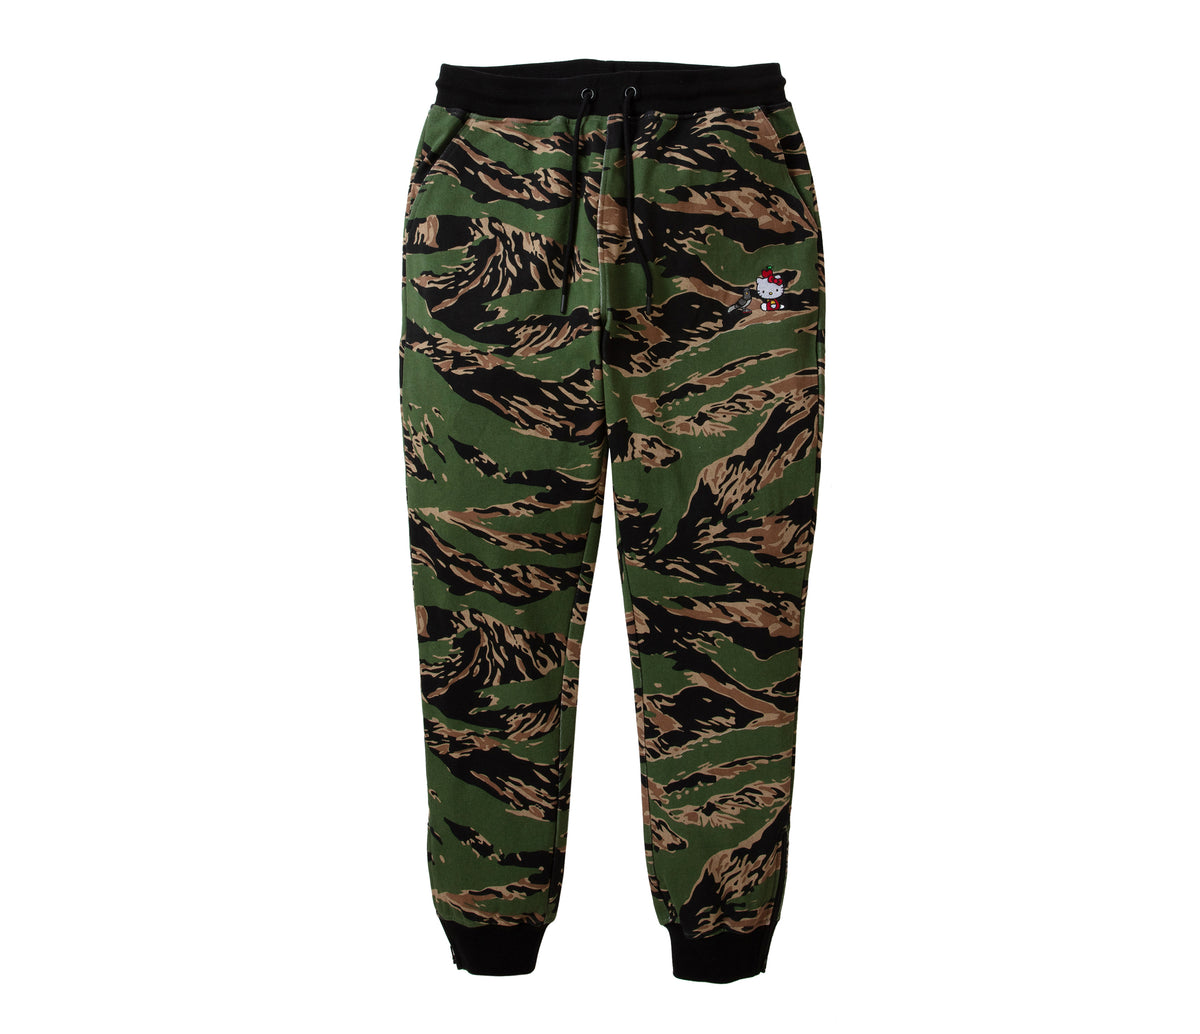 Staple Pigeon x Hello Kitty Camo Joggers